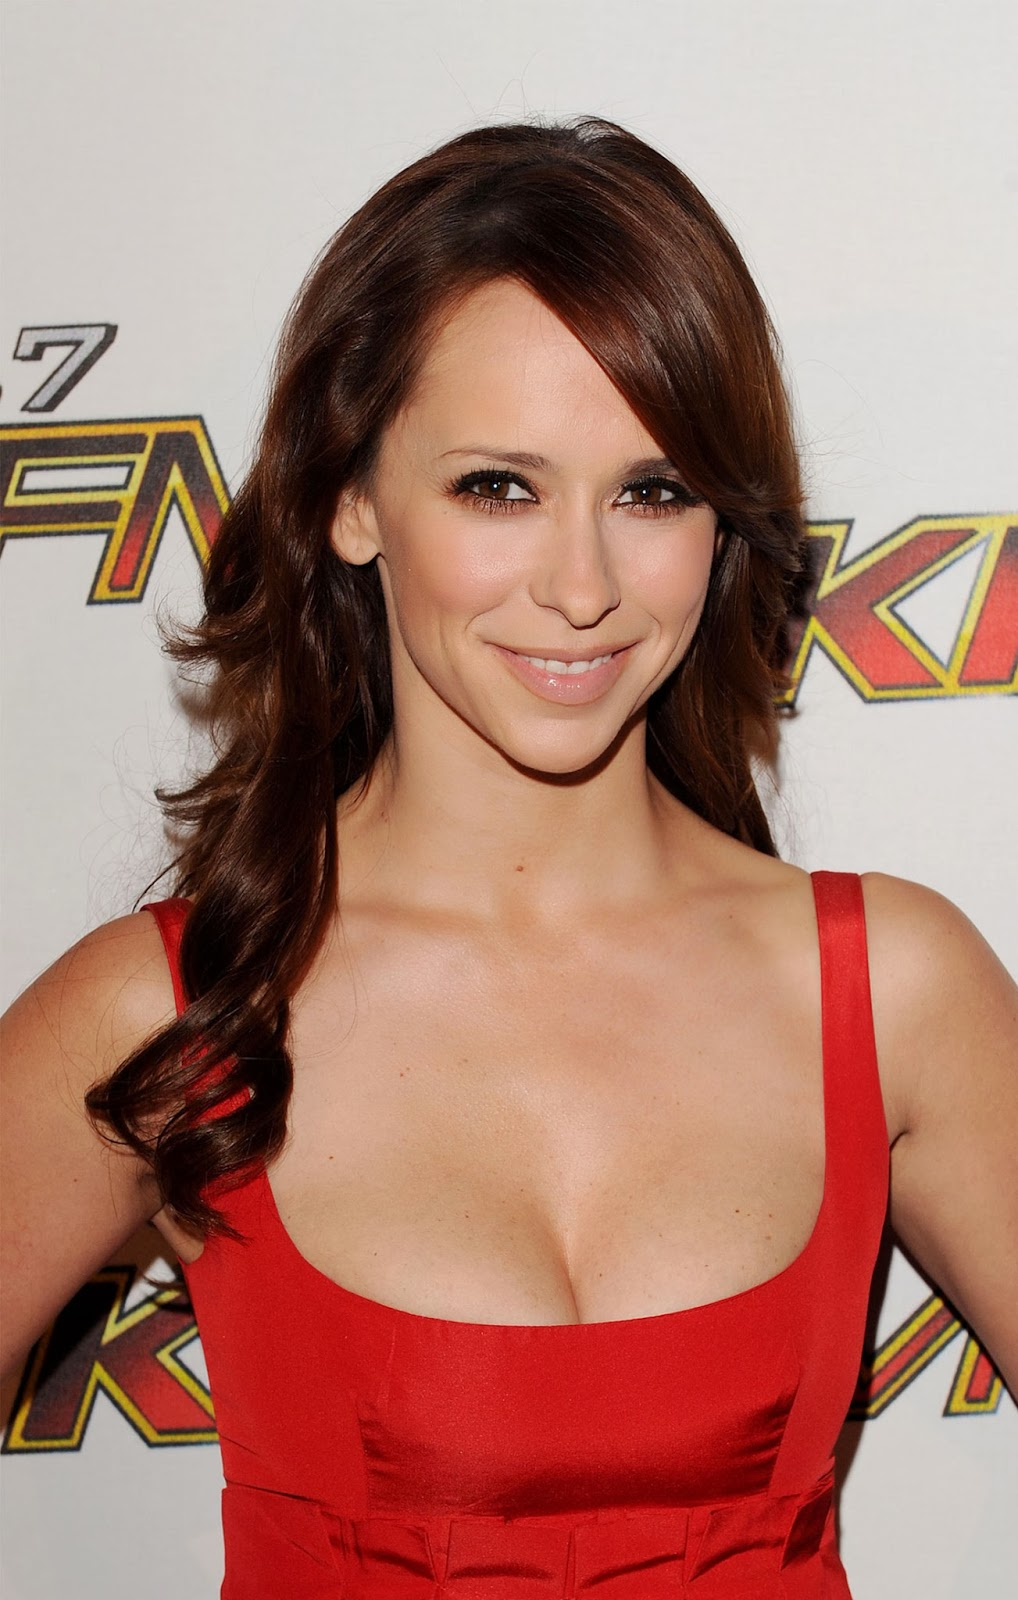 Jennifer Love Hewitt HD Wallpapers HD Wallpapers (High Definition) Free Background